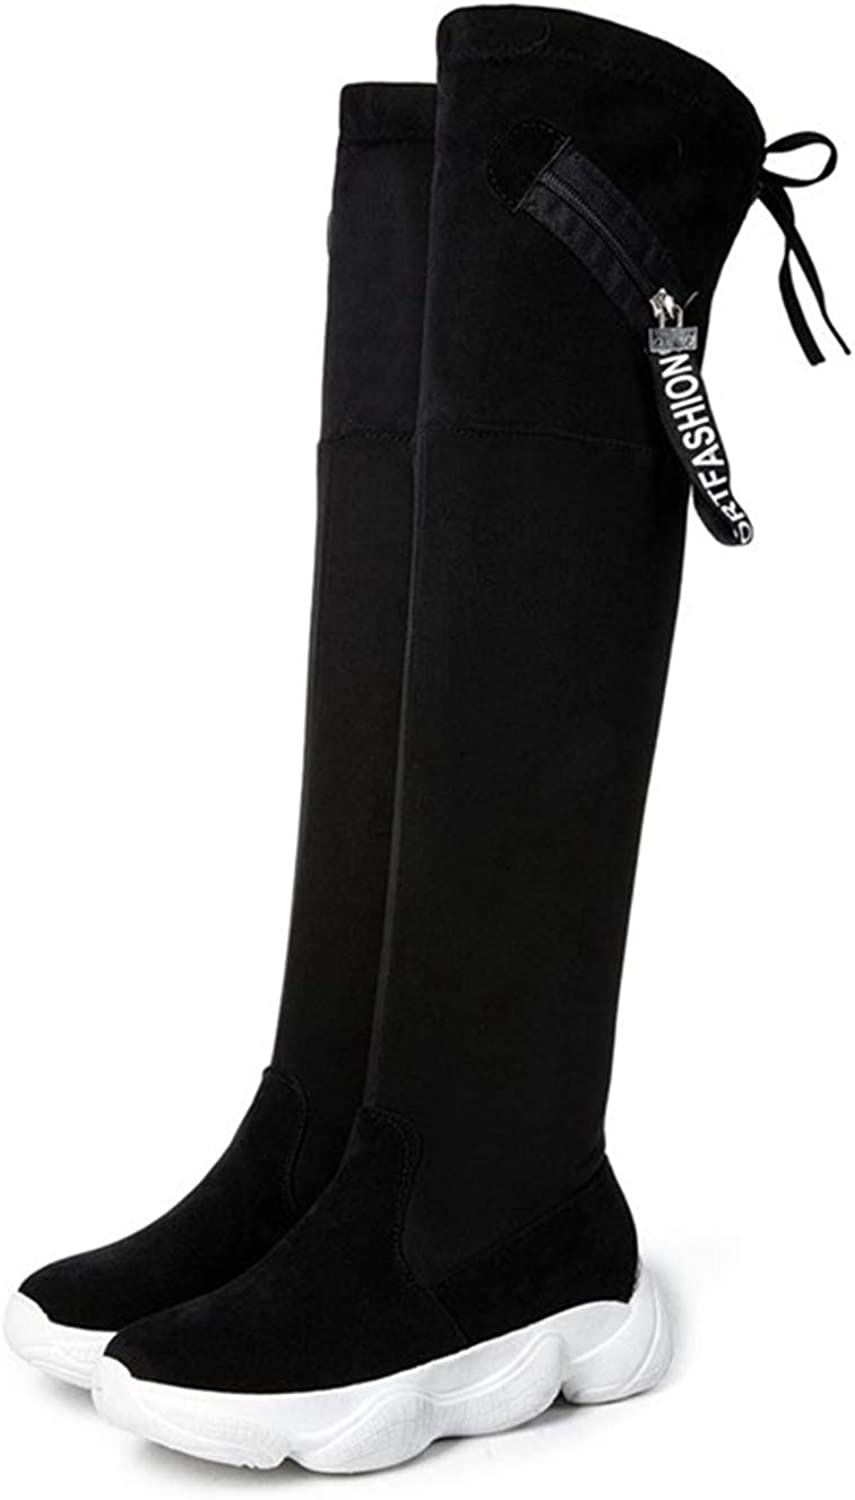 T-JULY Women Winter Over The Knee Snow Boots Warm Casual Slip-on Thigh High Heels shoes